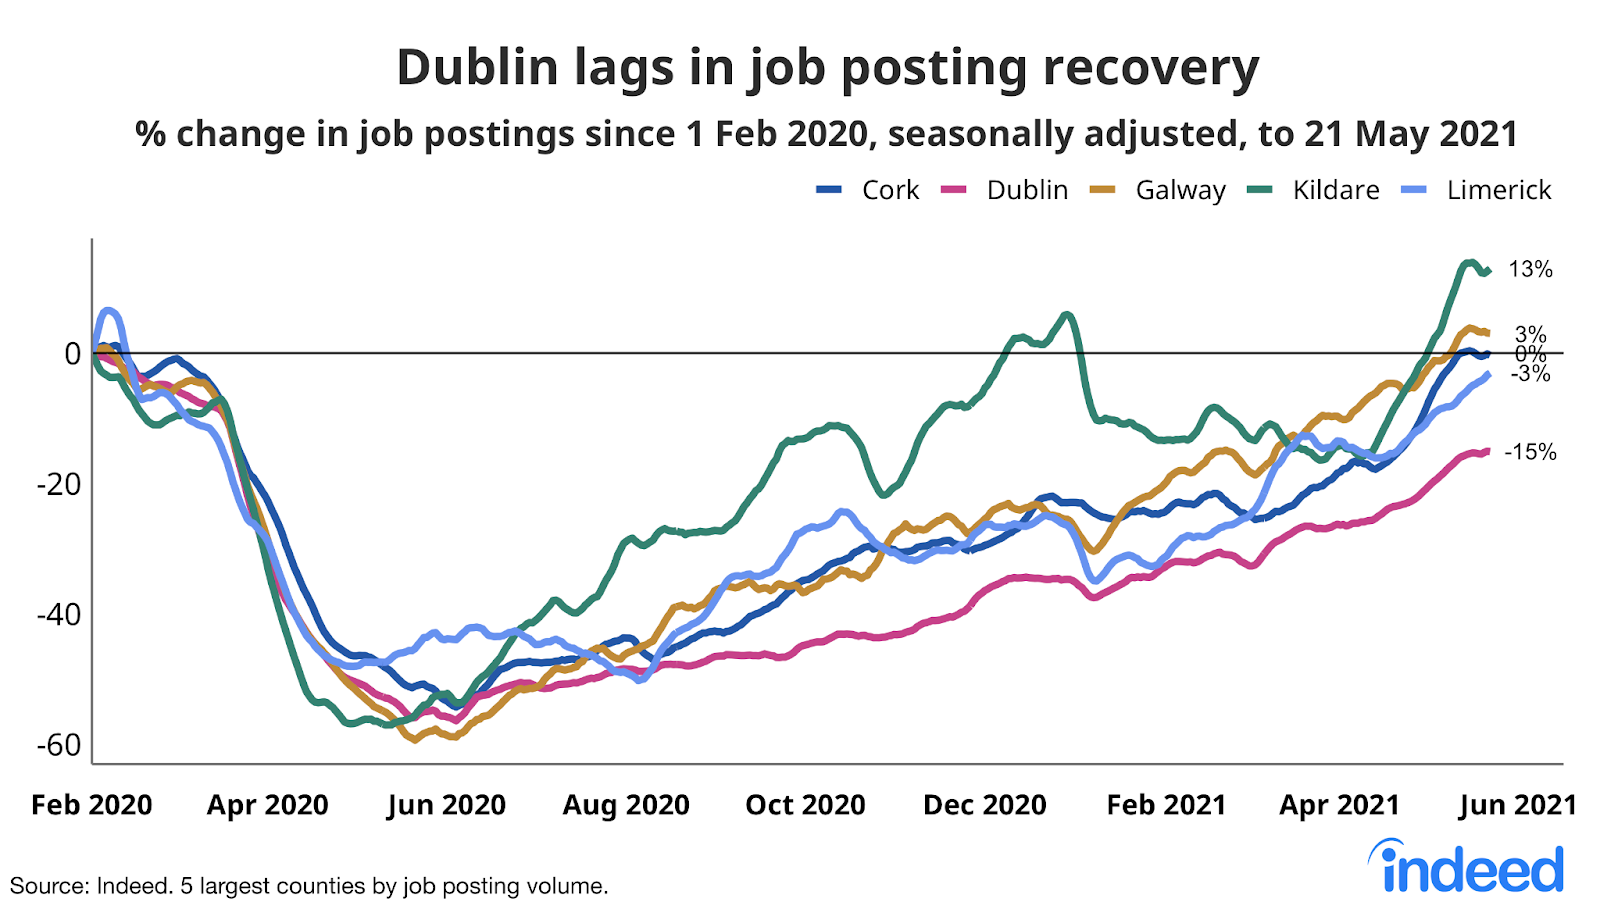 Line graph showing dublin lags in job posting recovery